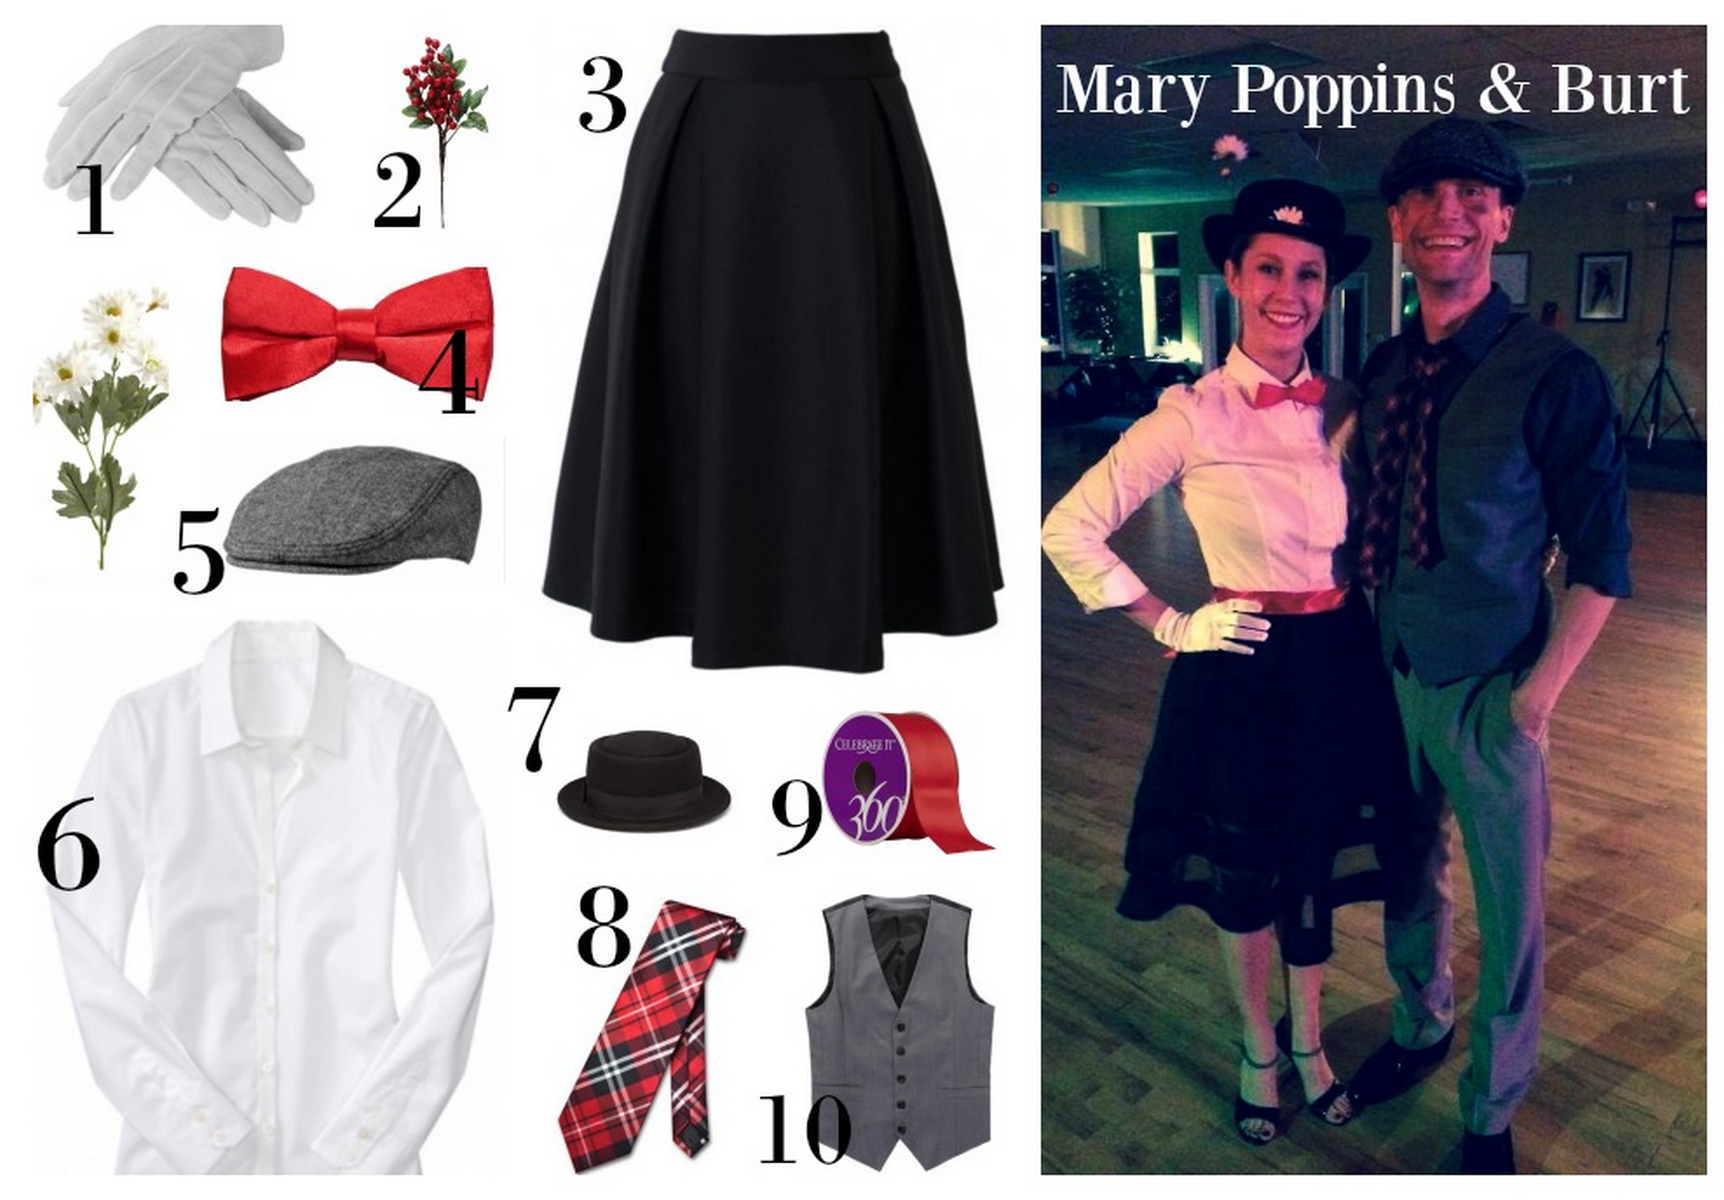 DIY Mary Poppins and Burt Halloween Costume